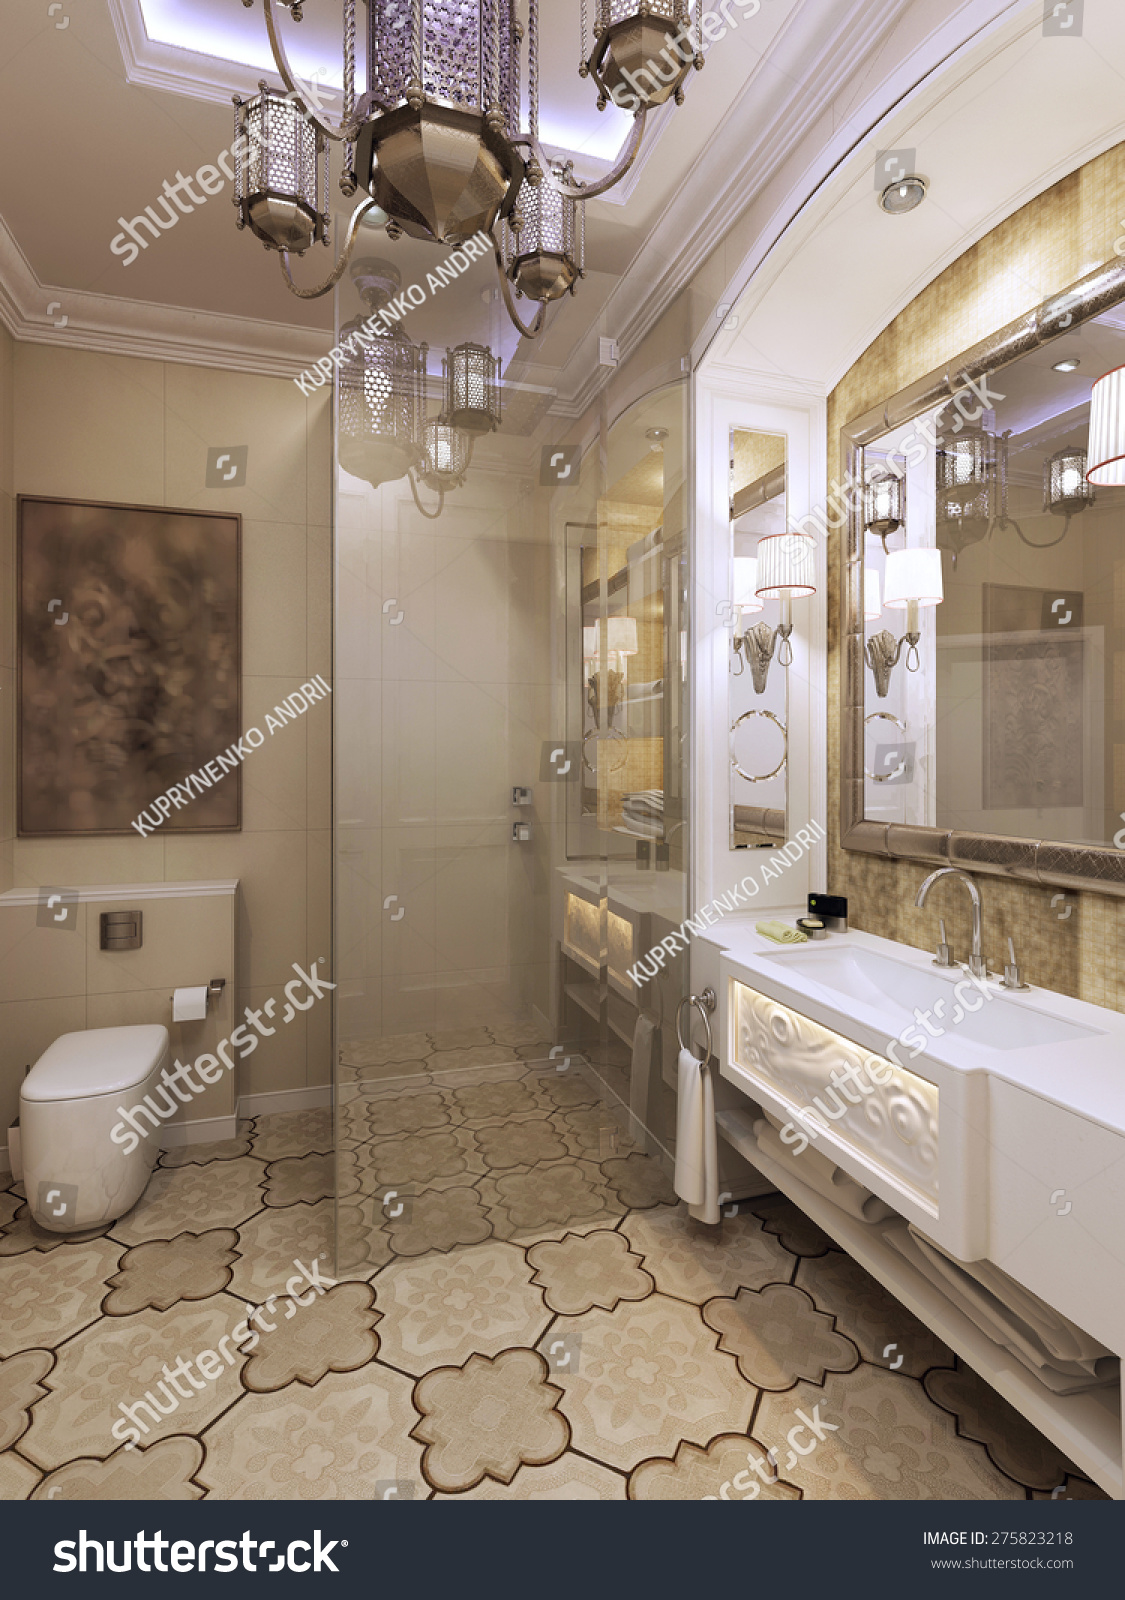 Bathroom moroccan style - Outstanding Bathroom Moroccan Style Photos Best Inspiration Home